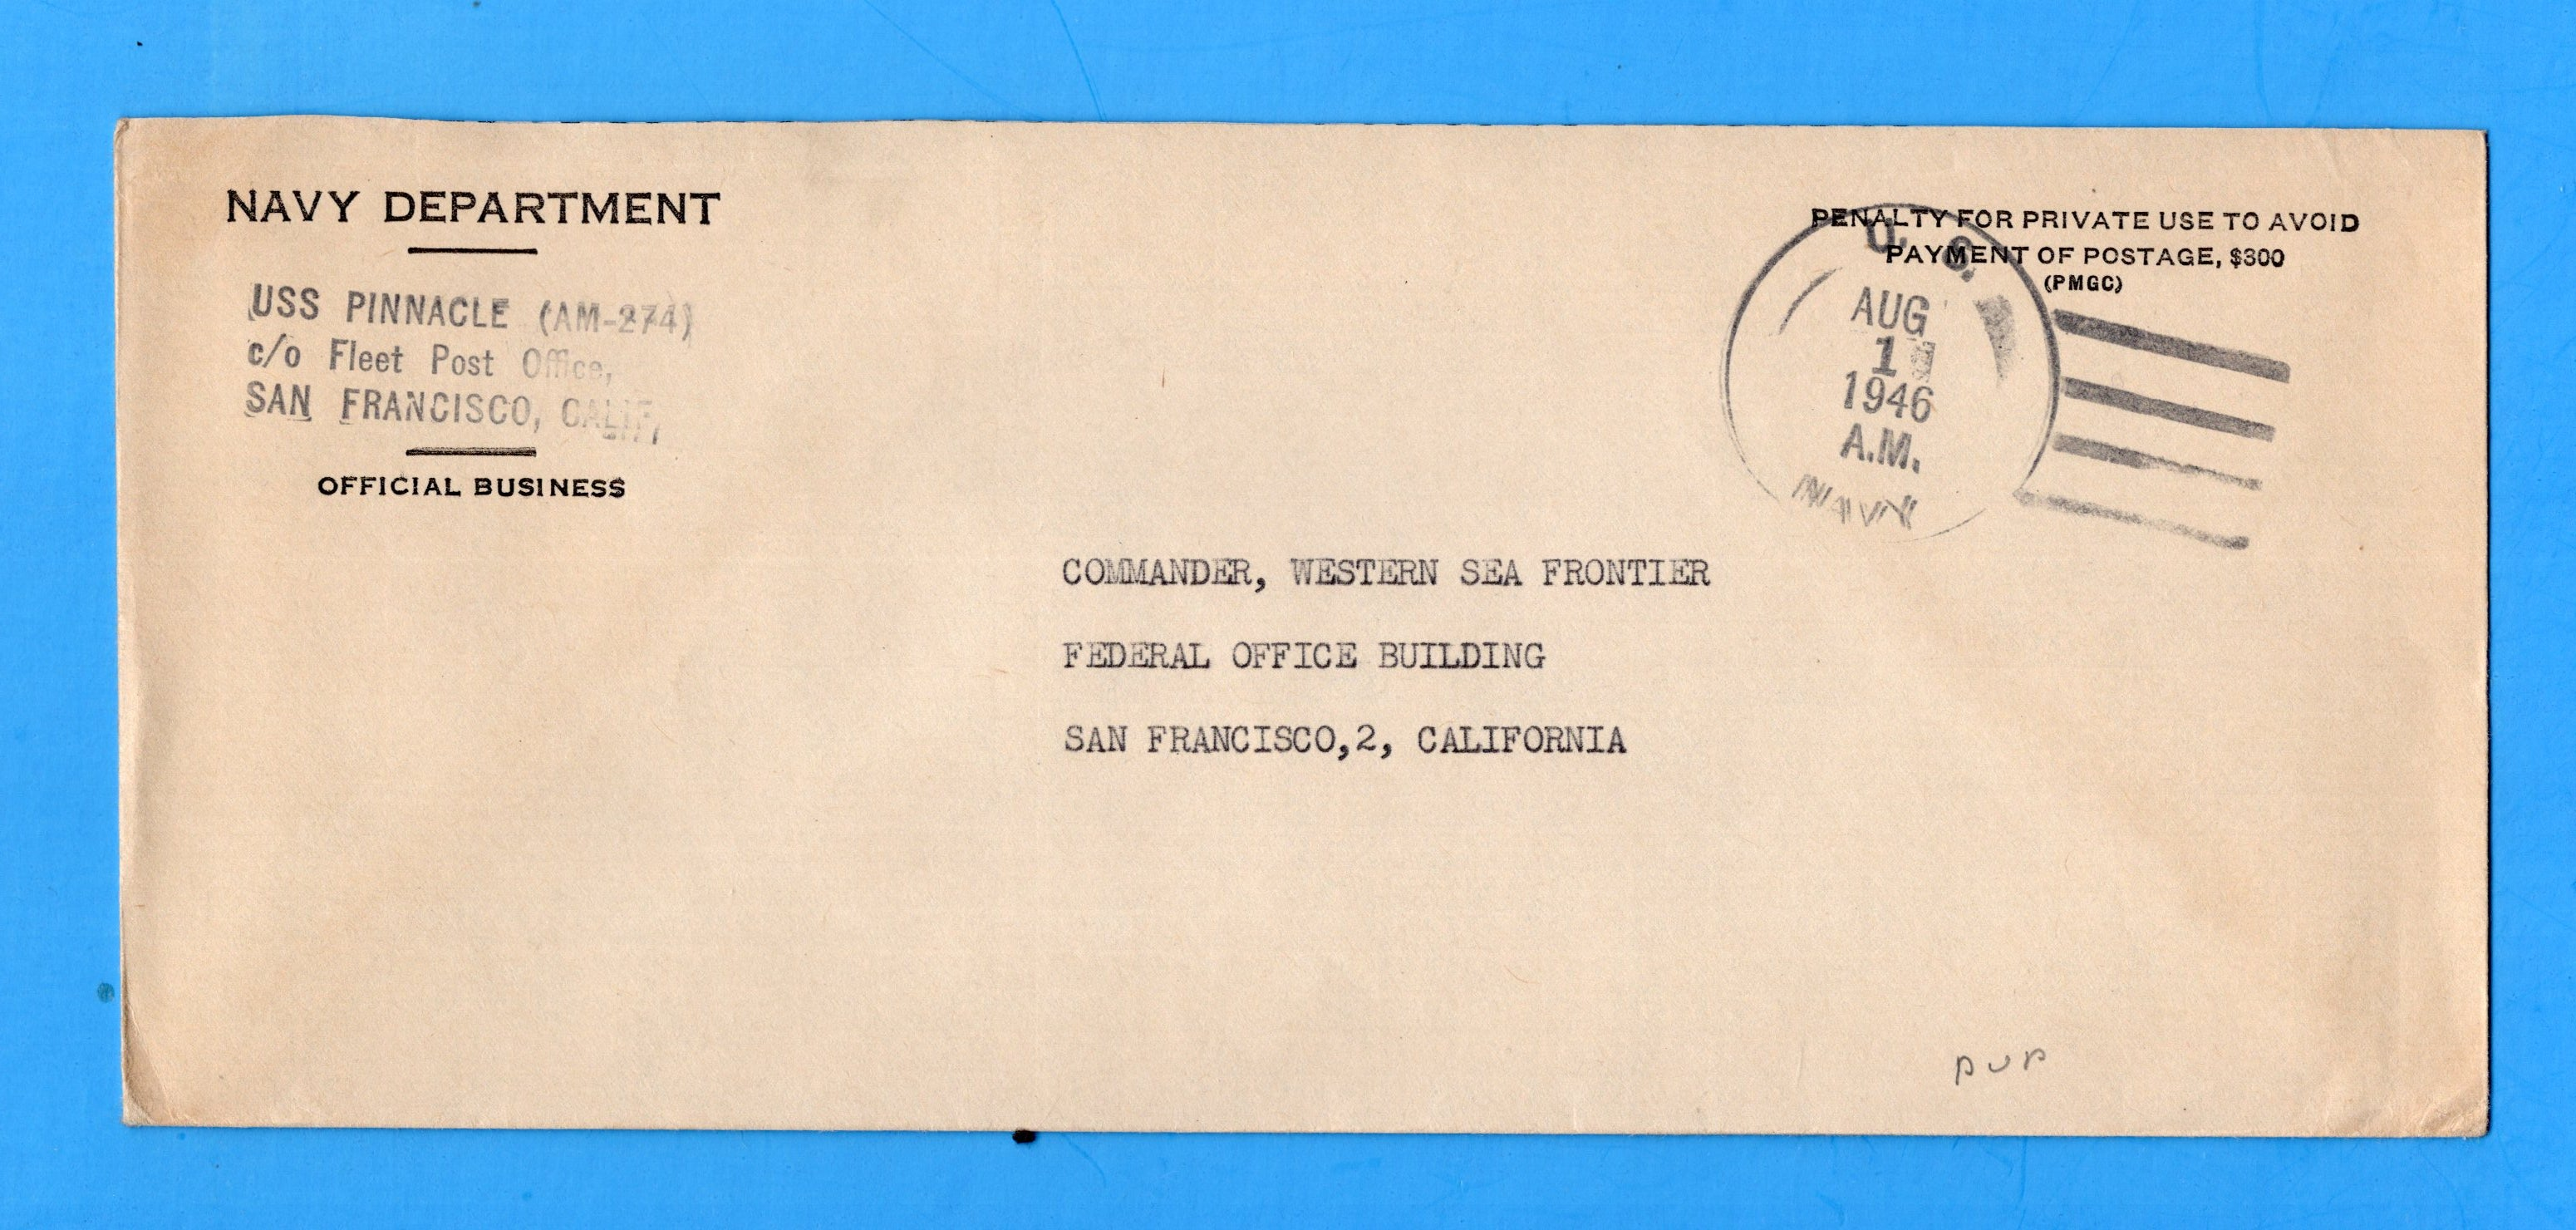 USS Pinnacle AM-274 Navy Department Official Mail August 1, 1946